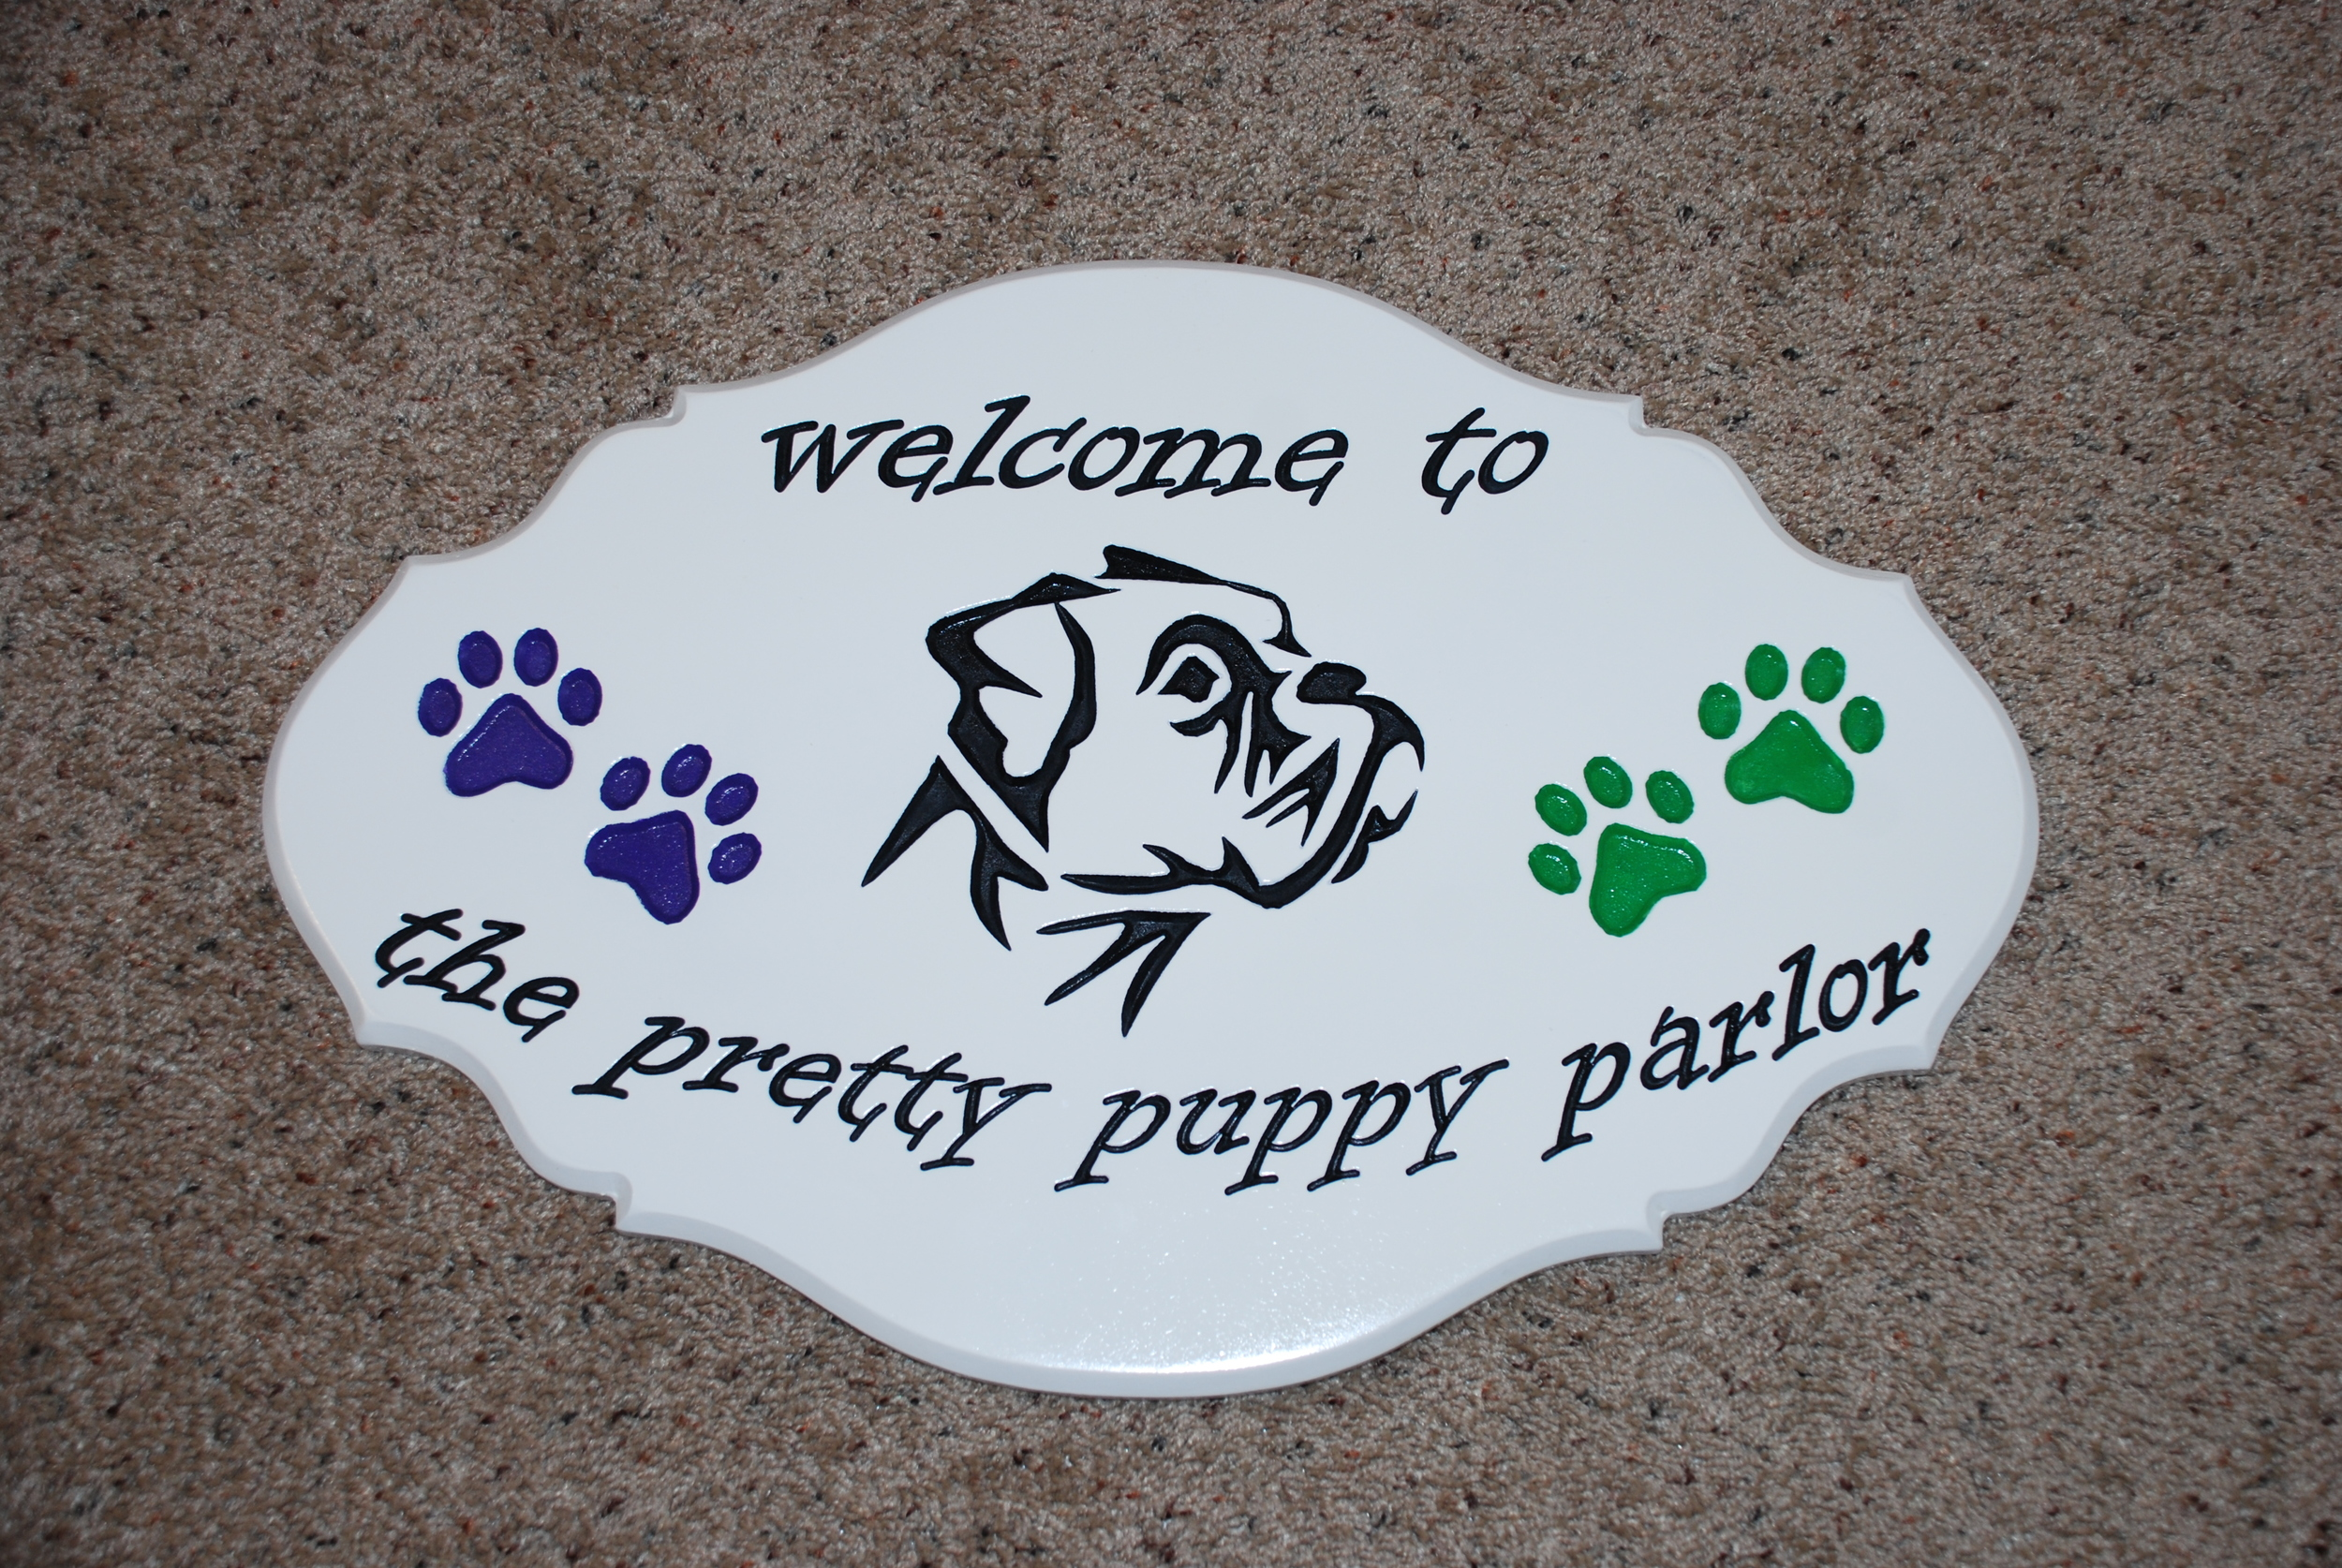 This sign was cut out of MDF (Medium Density Fiberboard). It was painted a gloss white, and the lettering and images were V-carved and then hand painted.